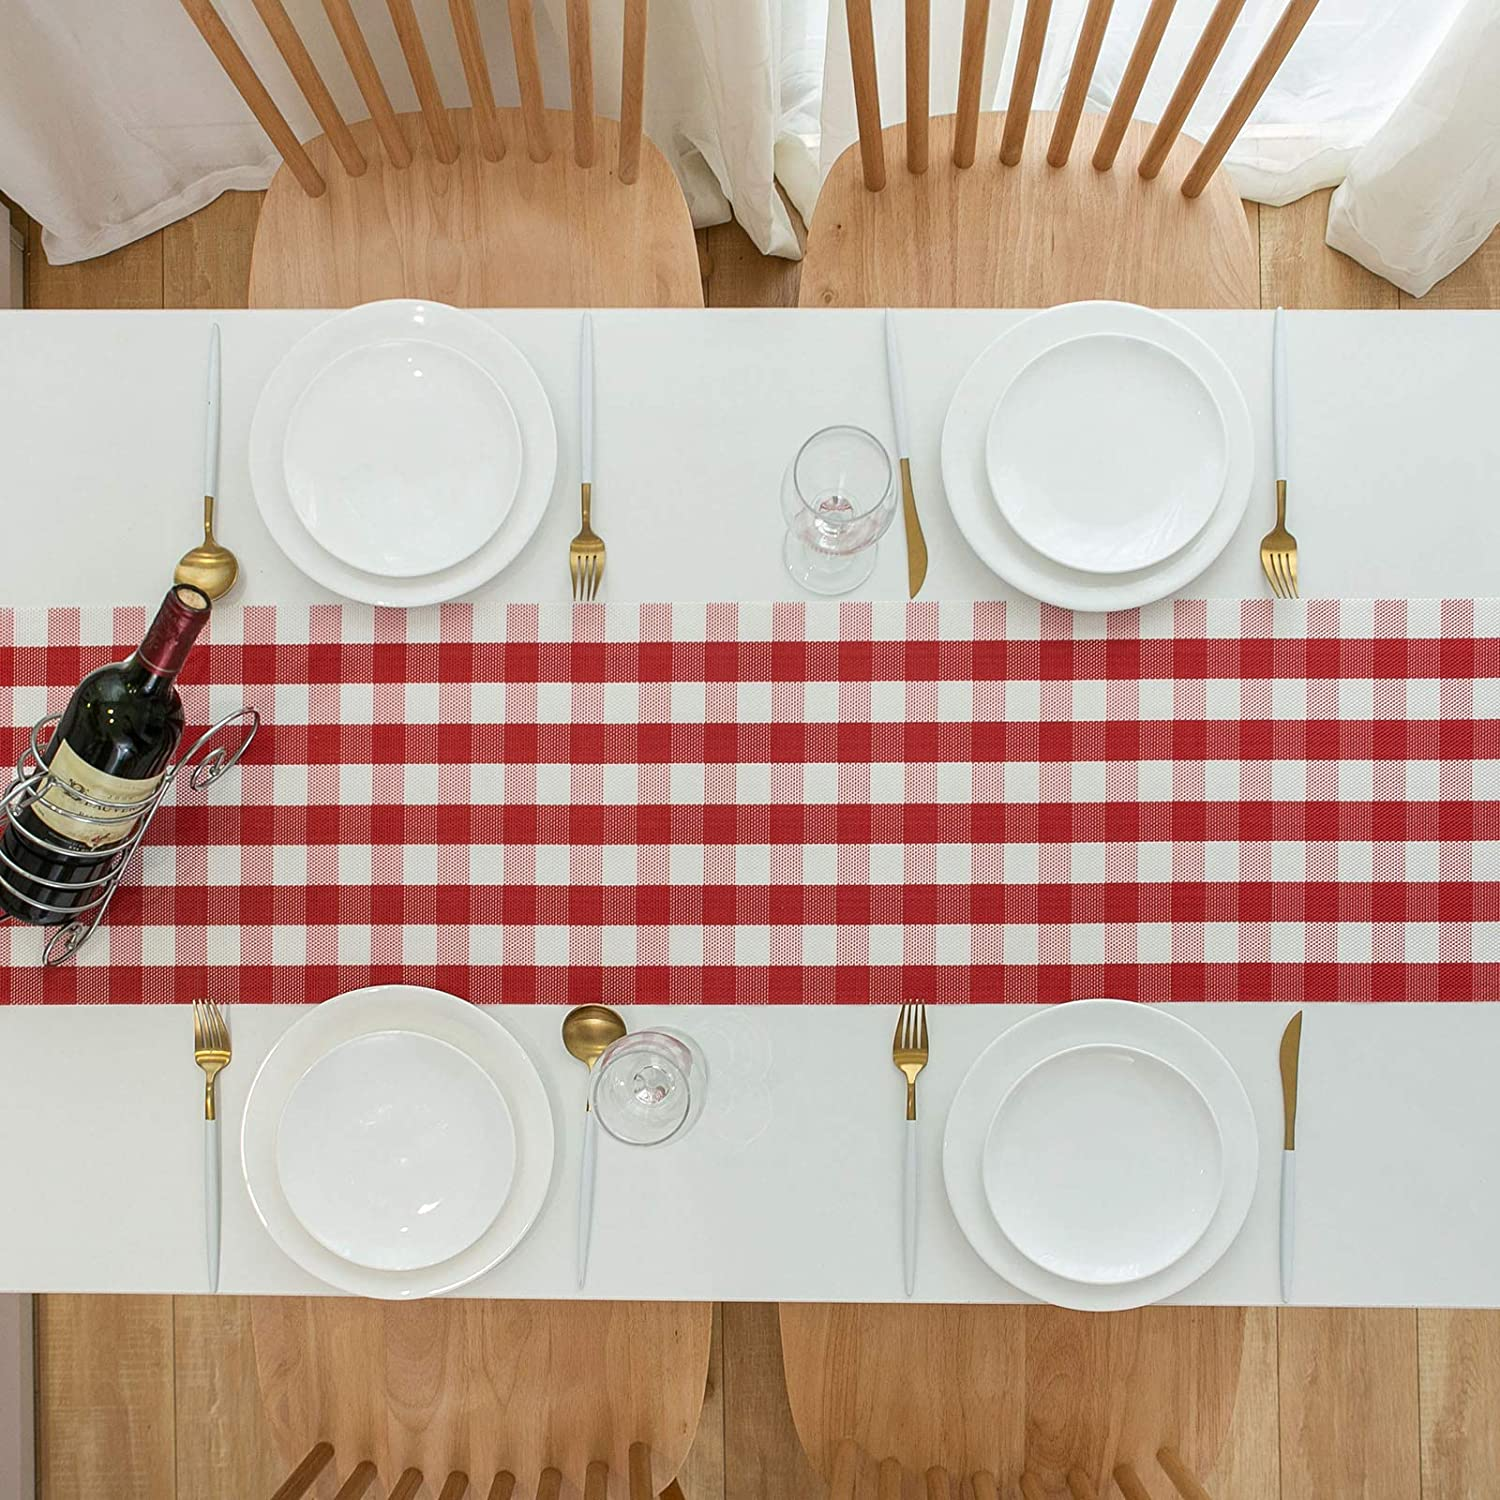 DOLOPL Buffalo Check Table Runner Black and White Table Runners 12/×72 PVC Easy to Clean Wipeable Washable Modern Farmhouse Table Runner for Dining Kitchen Table Halloween Thanksgiving Decorations